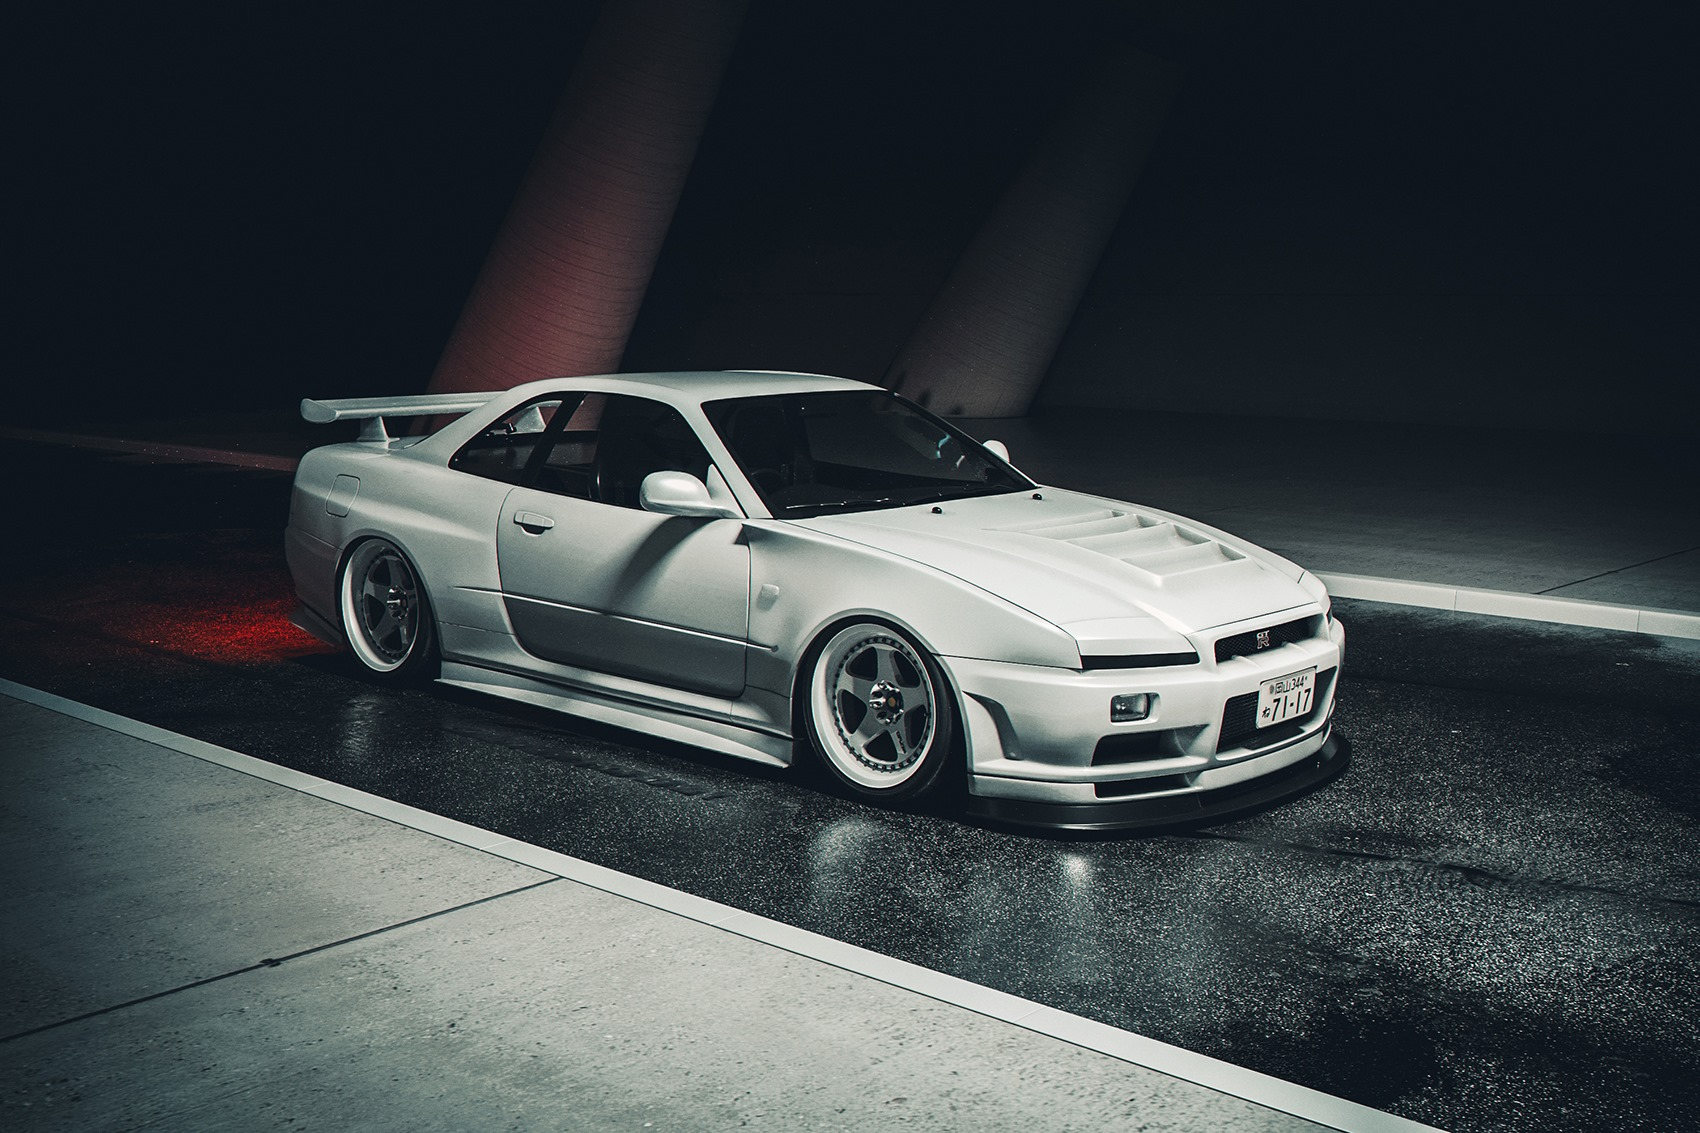 Nissan-GT-R-R34-pop-up-headligths-4